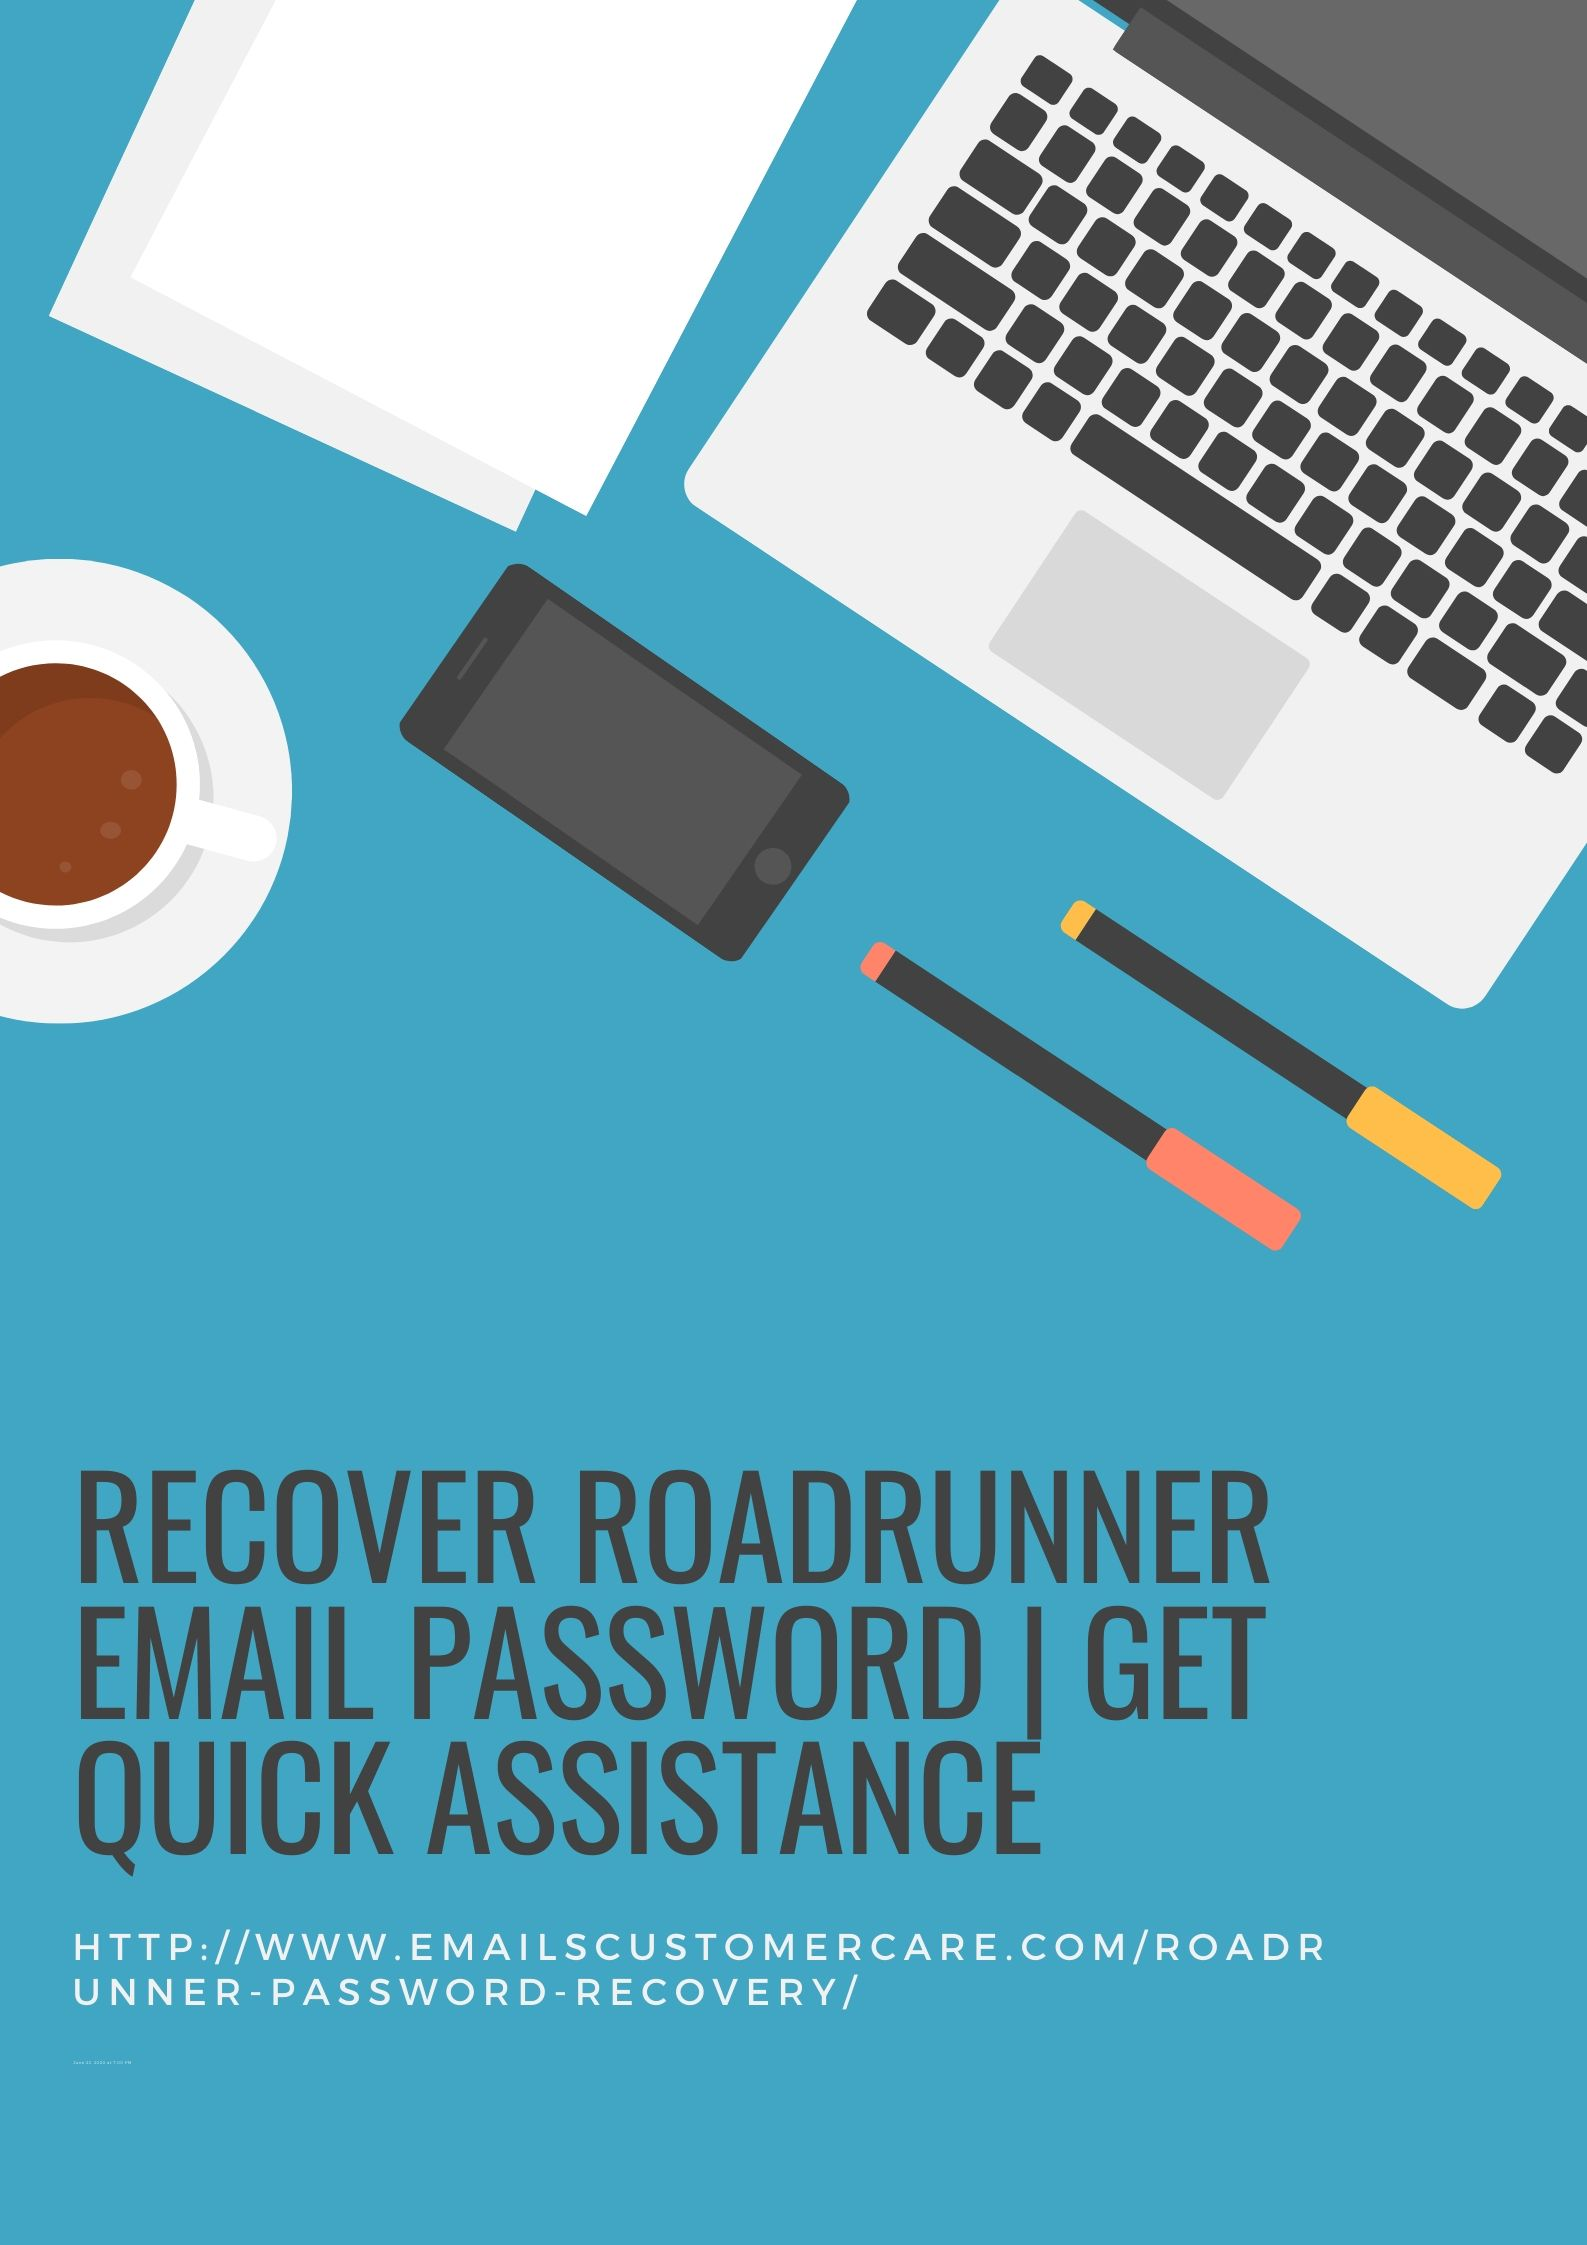 Recover Roadrunner Email Password | Get Quick Assistance image 1